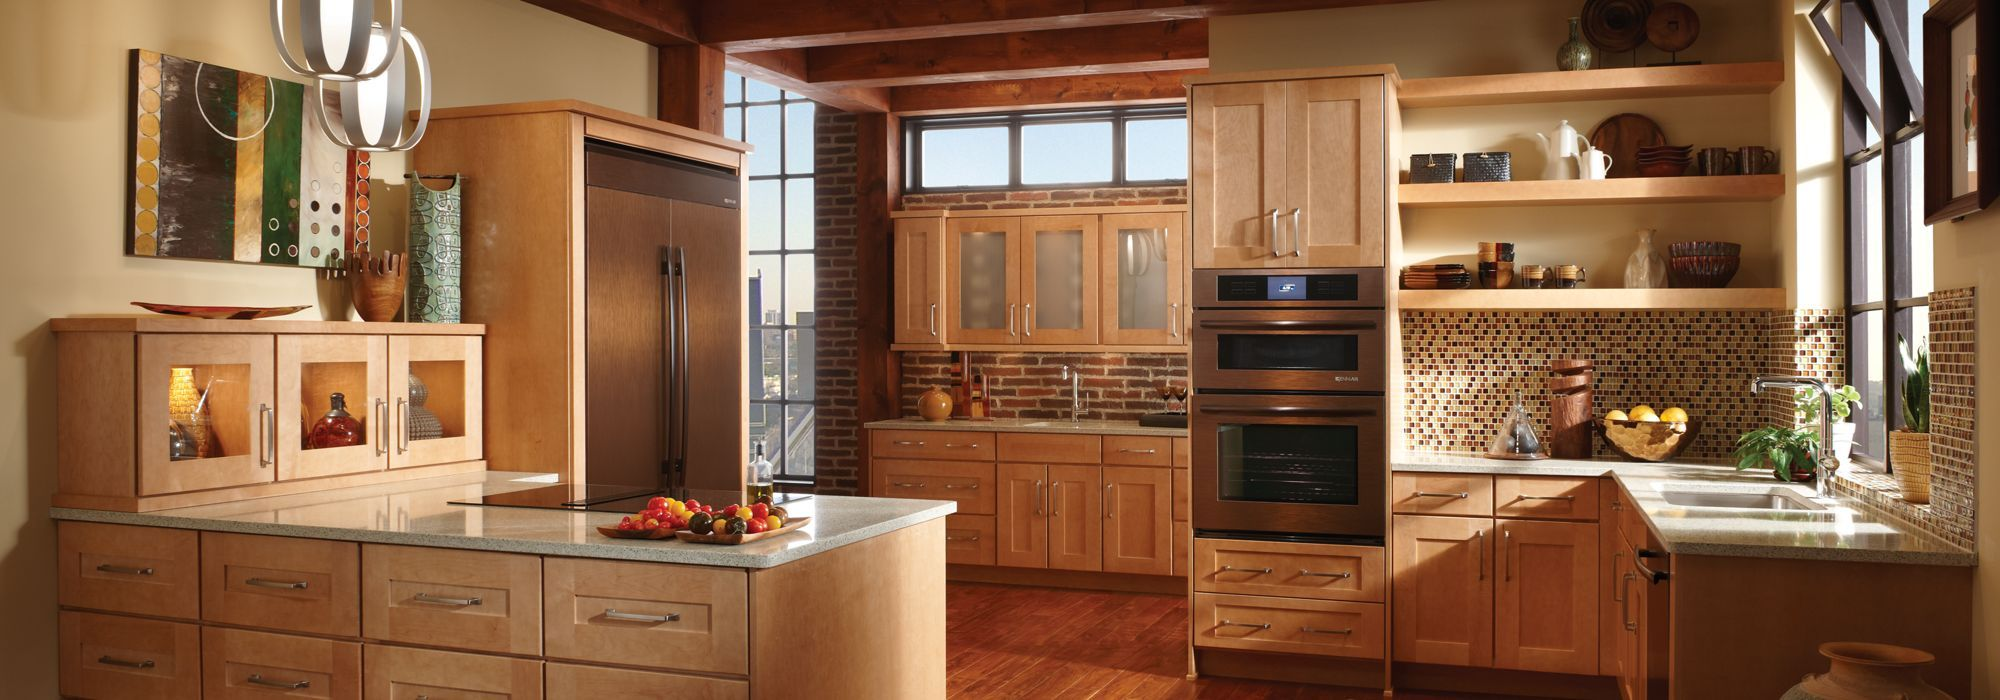 Buy kitchen cabinets canada lowes price online order rta home